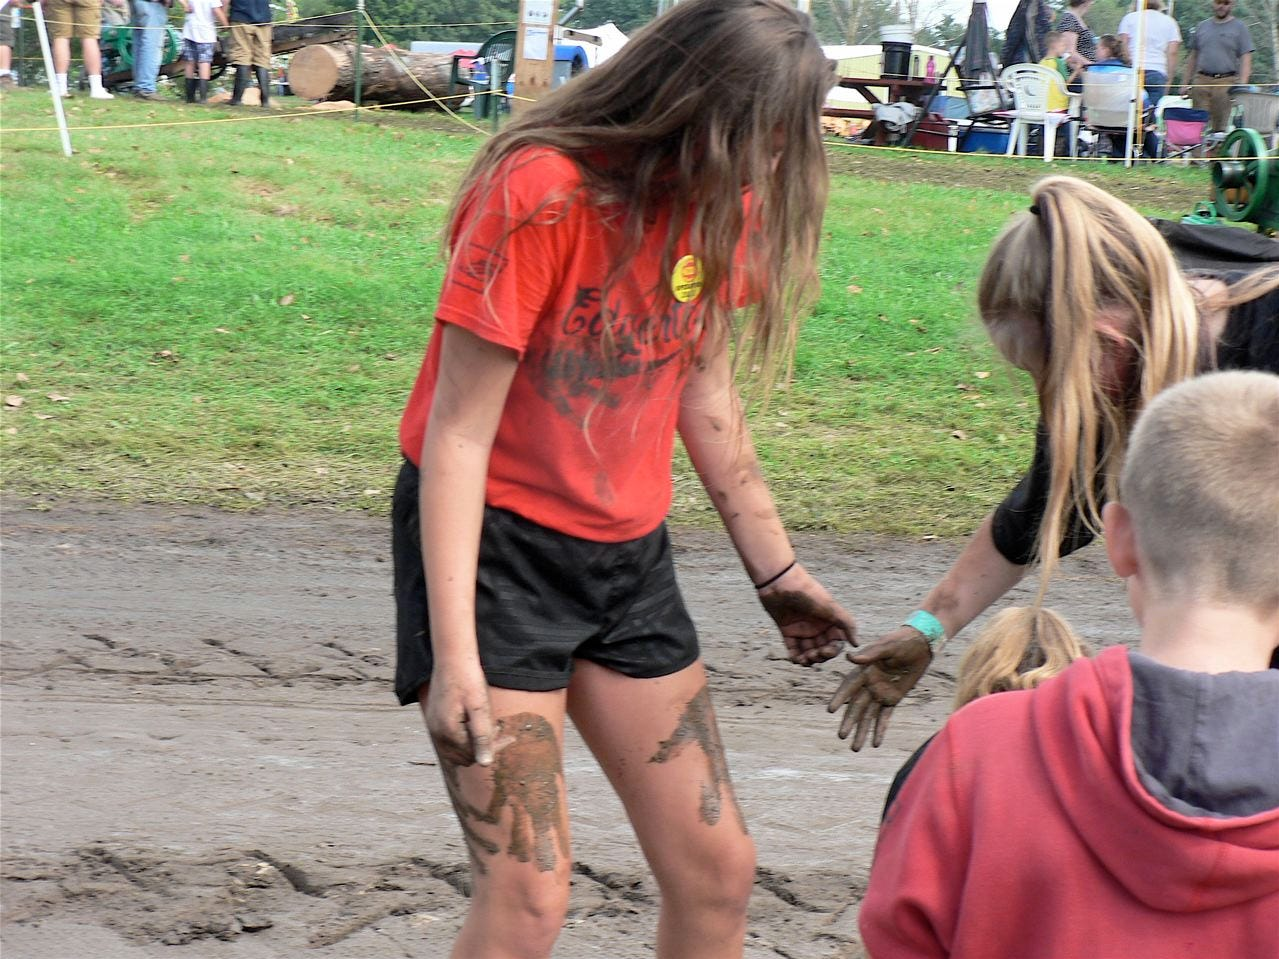 Even not-so-young girls play in the mud at the Thresheree.